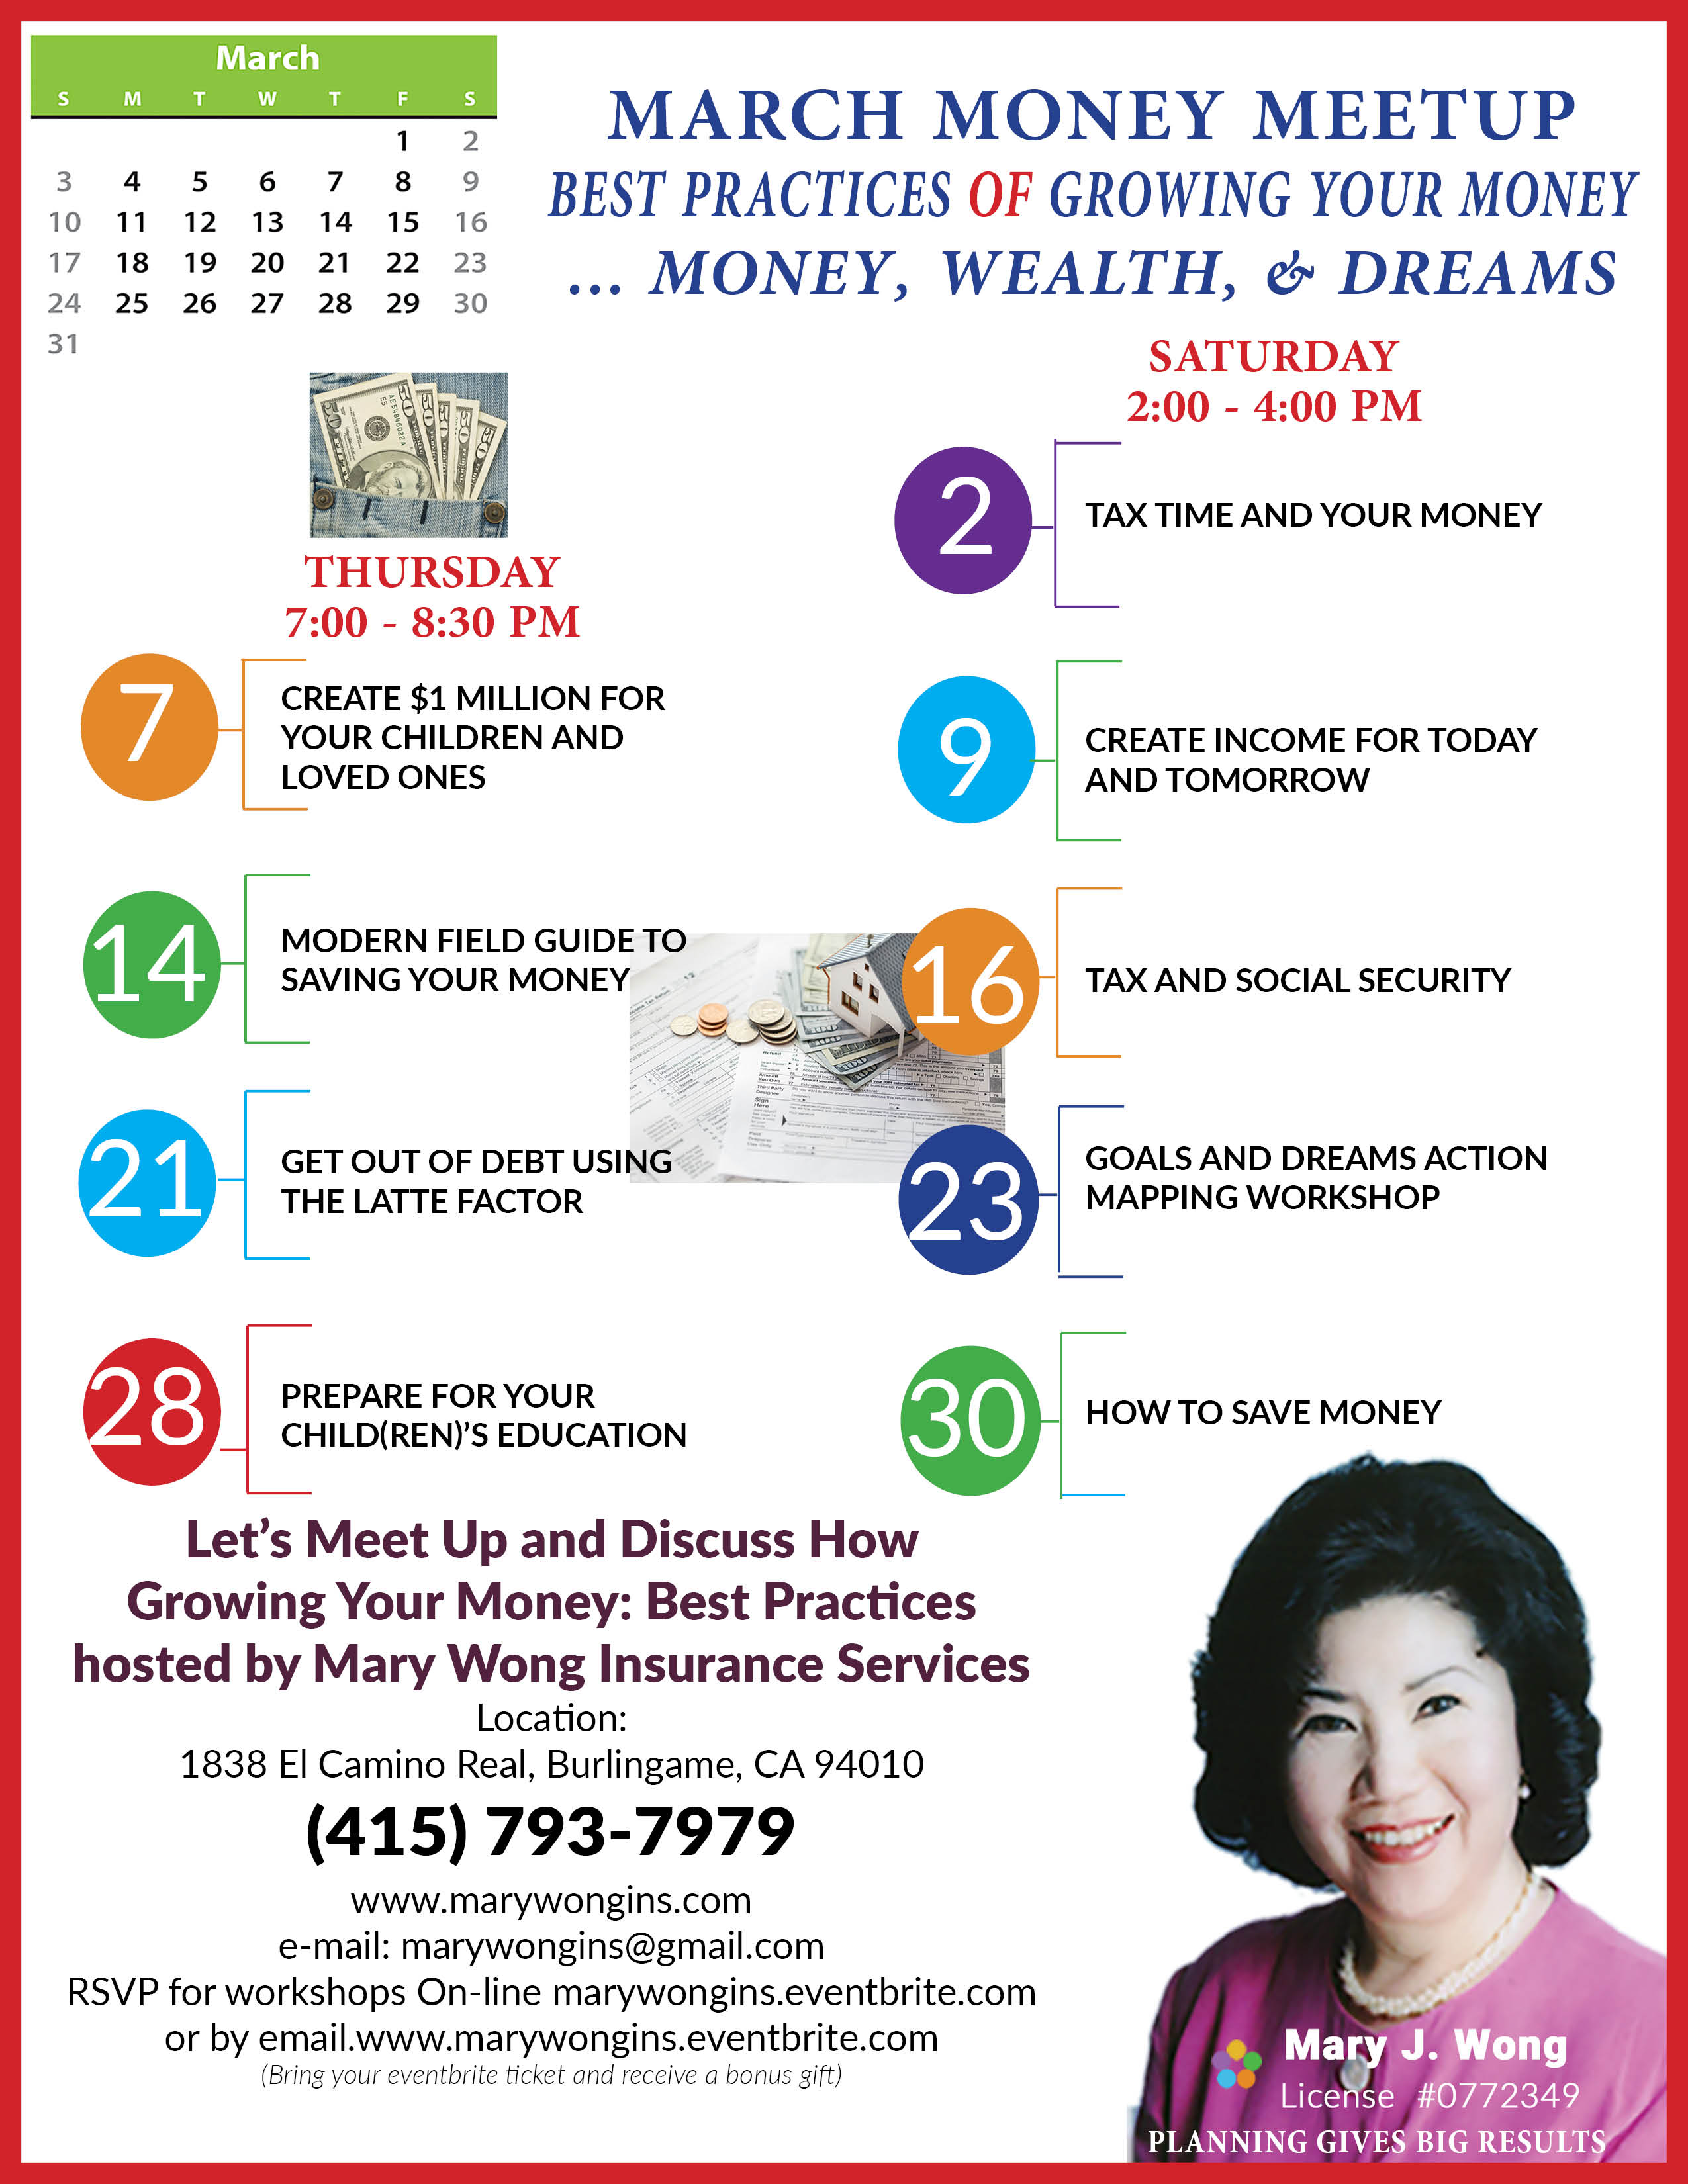 Invest in Yourself on Thursday - Find, Create, Grow and Keep Your Wealth with knowledge and education offered by Mary Wong Insurance Services